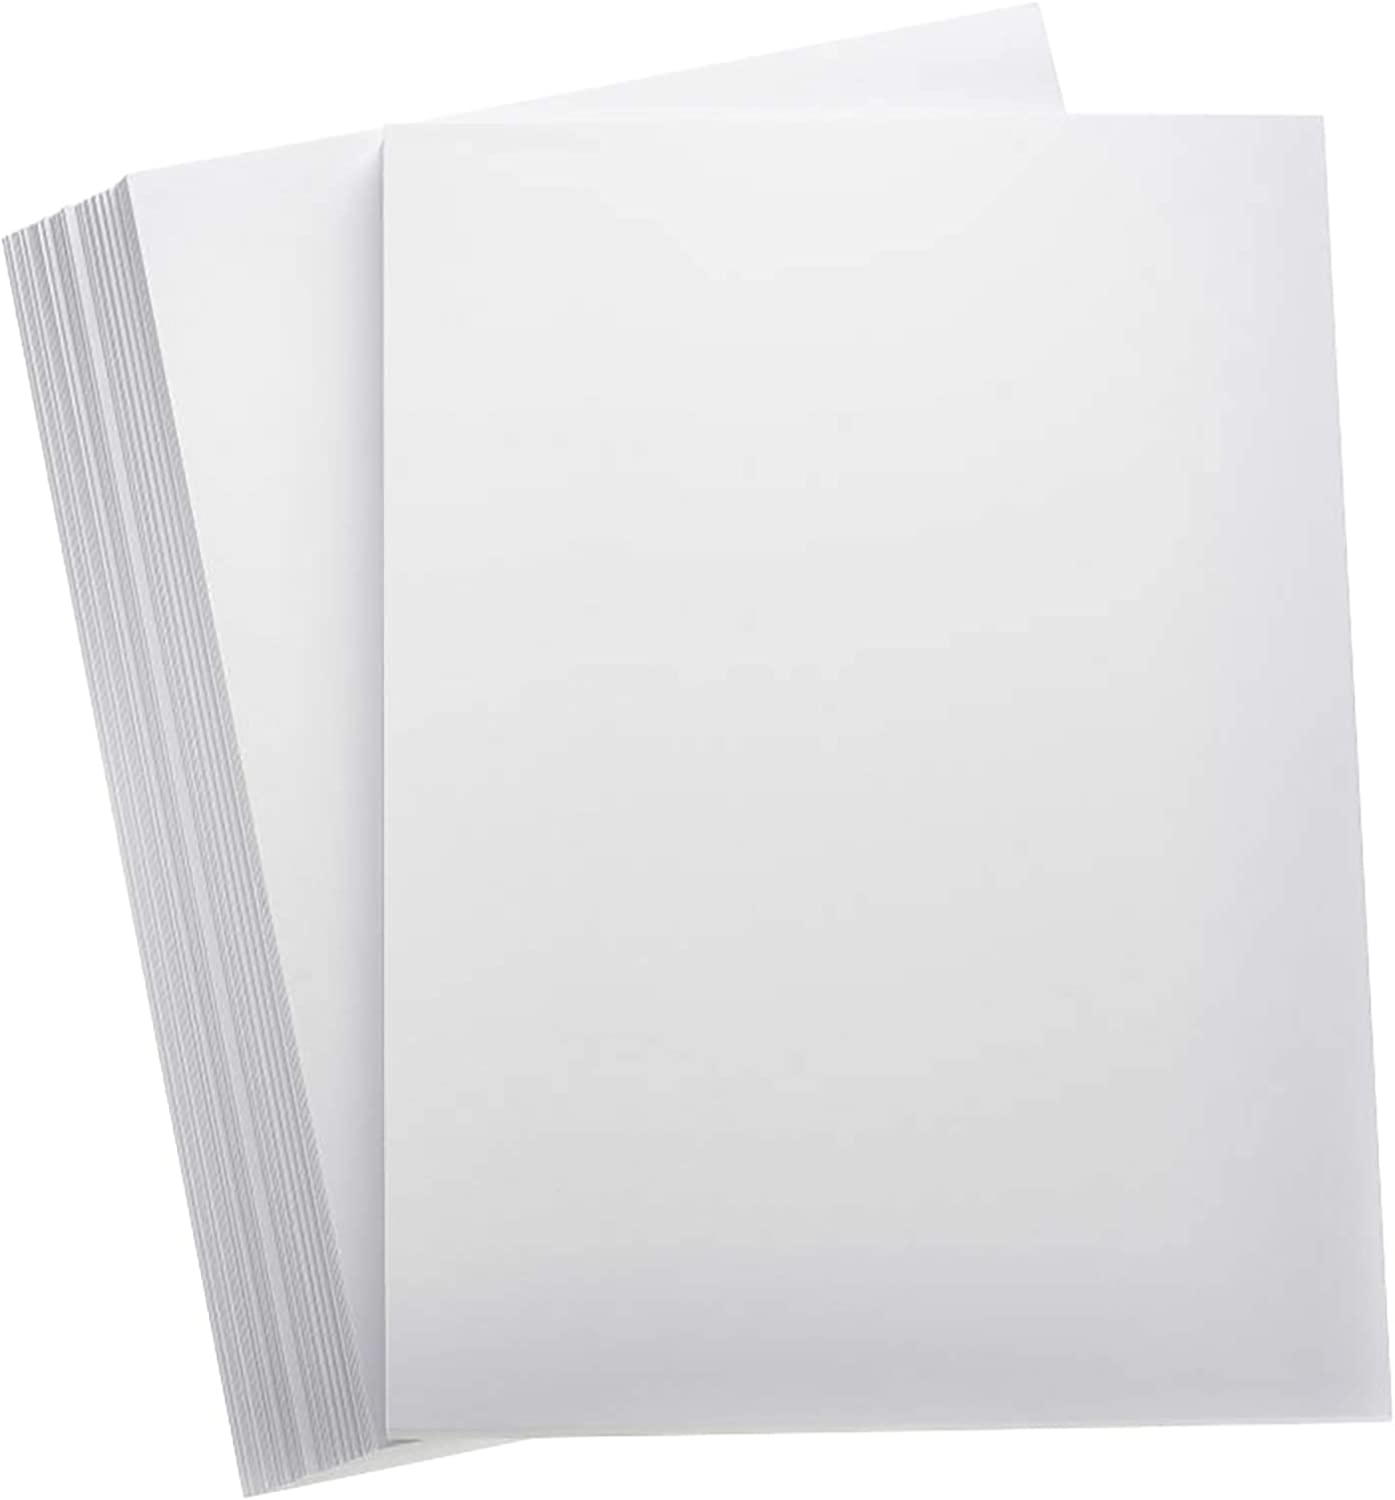 100 A4 Sheets Plain White Thick Craft Card 250gsm Card